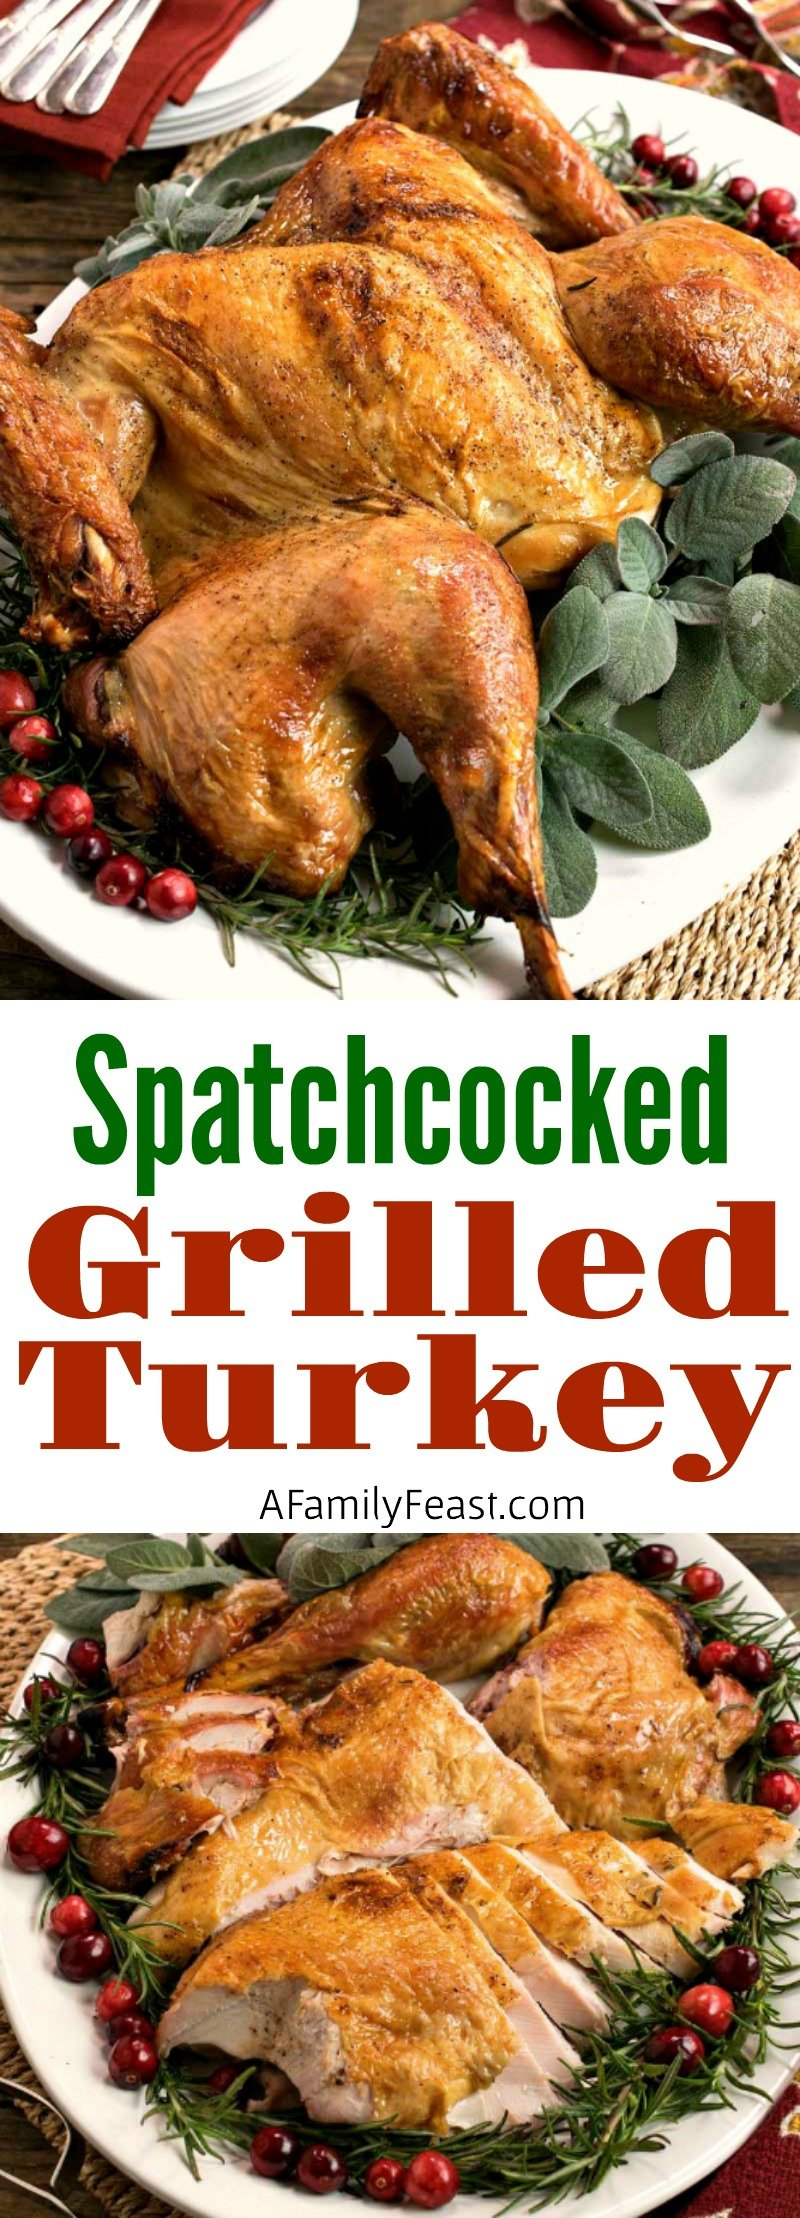 Make this delicious Grilled Turkey recipe for the holidays! It cooks up quickly and deliciously!